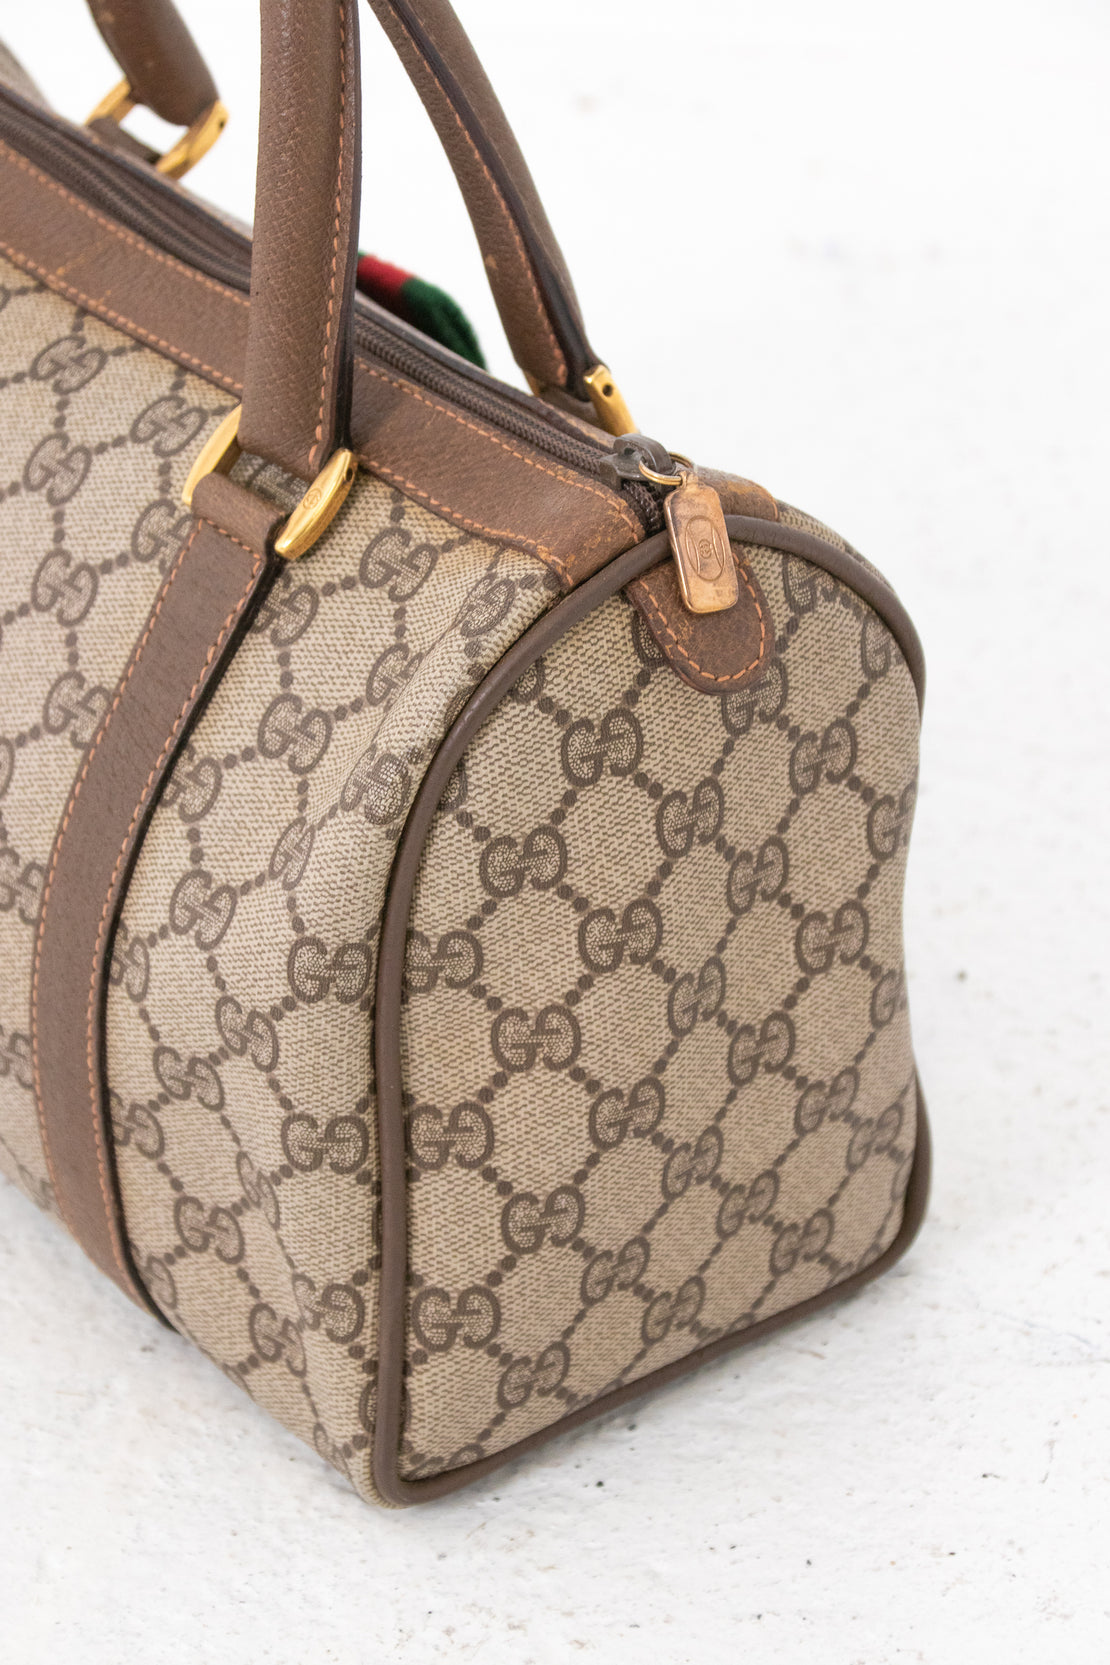 Gucci Leather Ophidia Boston Handbag